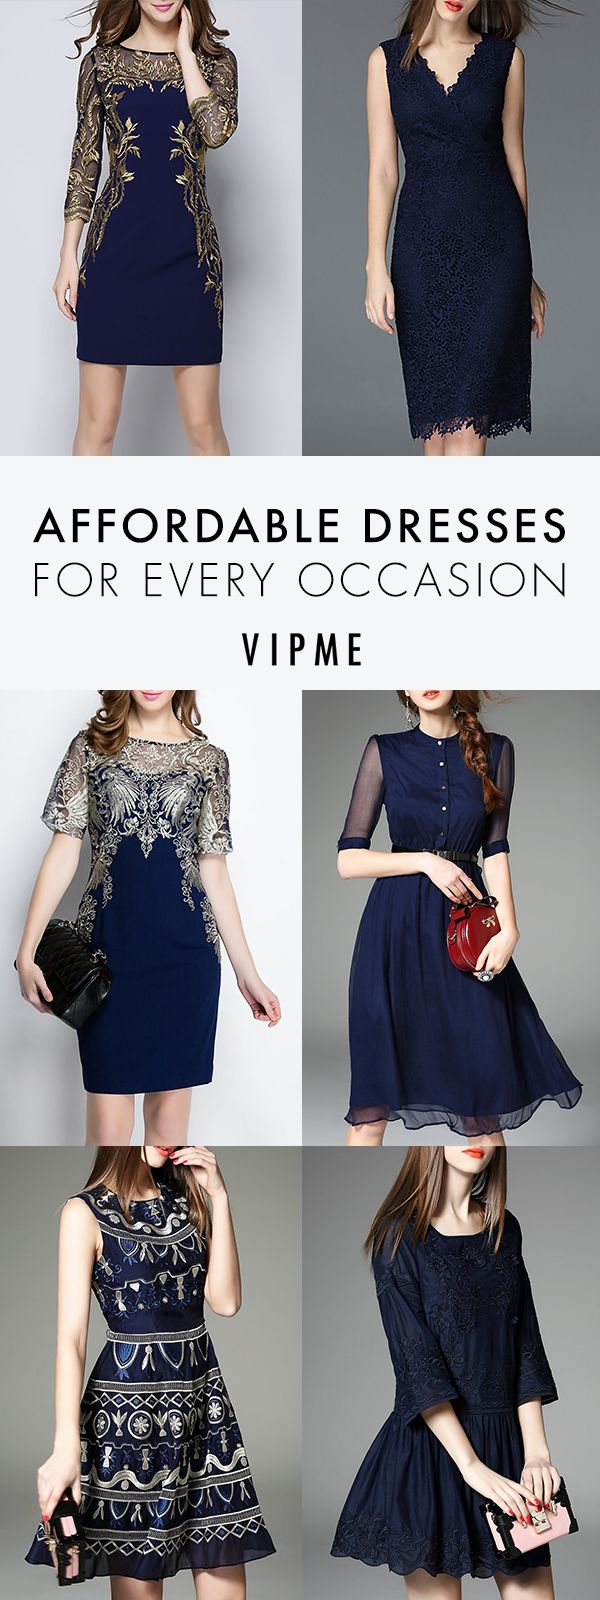 At VIPme.com, we turn runway fashion trends into affordable pieces that you can add to your wardrobe. Search through day, casual and party dresses to find the perfect dress for any occasion. Show off your VIP style in luxe fabrics like silk topped with sheer layers and intricate embroidered detailing.